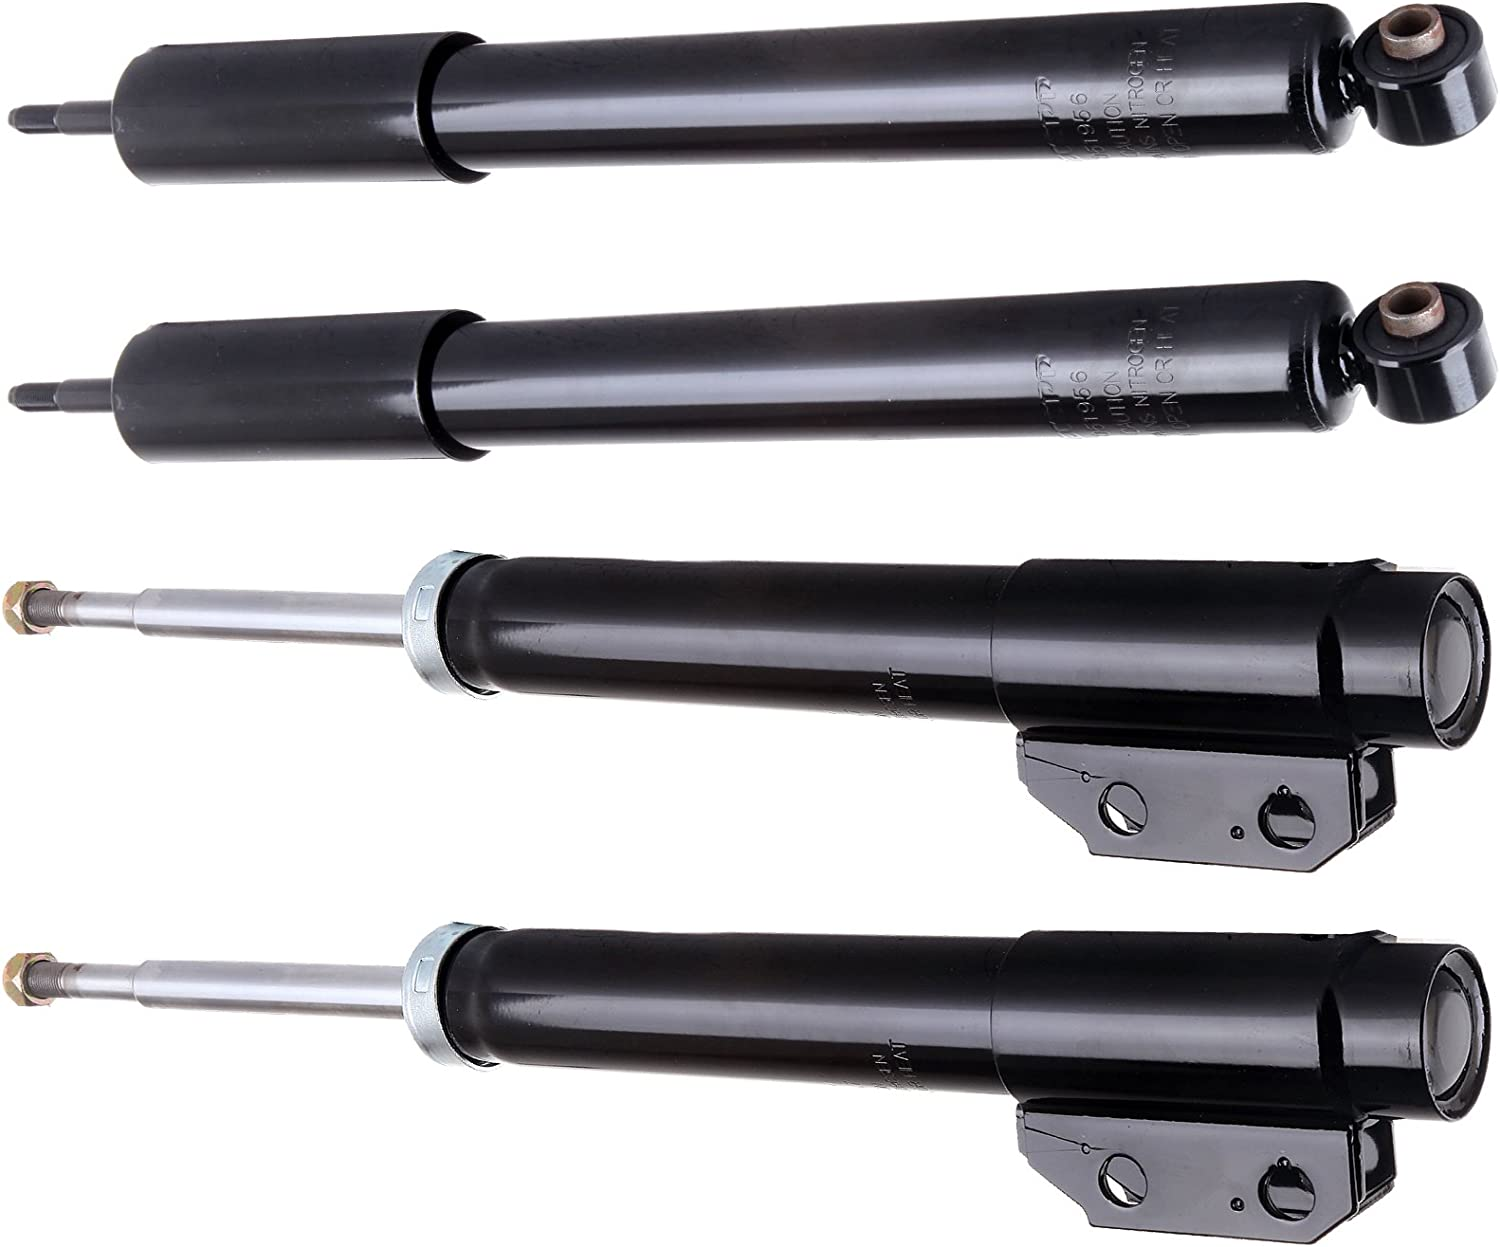 LSAILON 4 pcs Max 78% OFF Front Rear Struts Shocks free for Replacement Absorbers